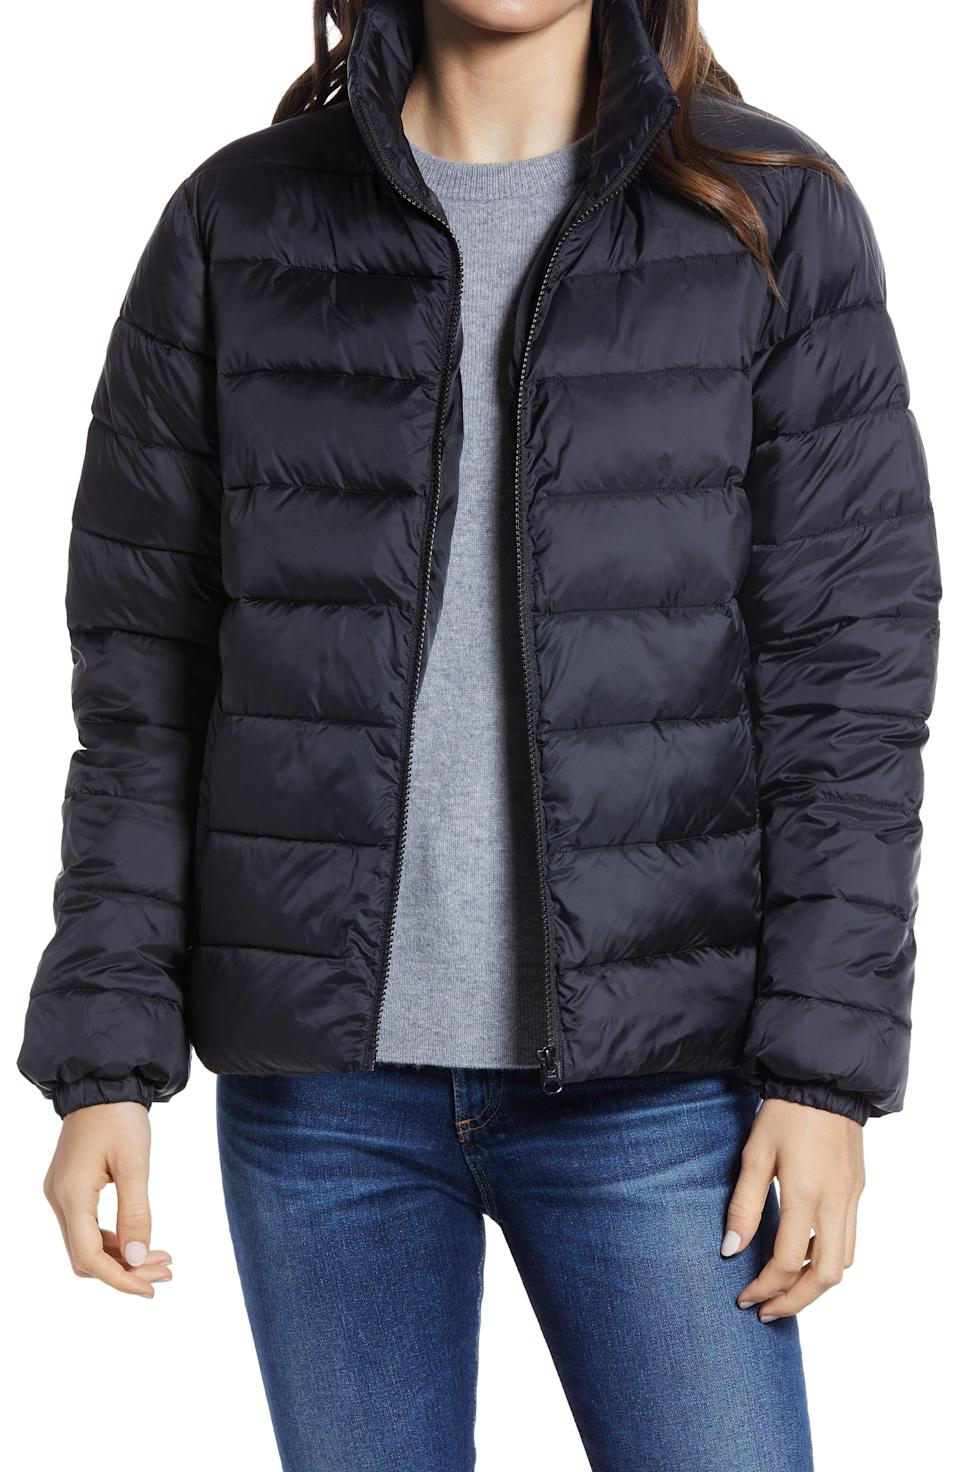 """<p><strong>NORDSTROM</strong></p><p>nordstrom.com</p><p><a href=""""https://go.redirectingat.com?id=74968X1596630&url=https%3A%2F%2Fwww.nordstrom.com%2Fs%2Fnordstrom-zip-puffer-coat%2F5859508&sref=https%3A%2F%2Fwww.marieclaire.com%2Ffashion%2Fg35090742%2Fnordstrom-half-yearly-sale-2020%2F"""" rel=""""nofollow noopener"""" target=""""_blank"""" data-ylk=""""slk:Shop Now"""" class=""""link rapid-noclick-resp"""">Shop Now</a></p>"""